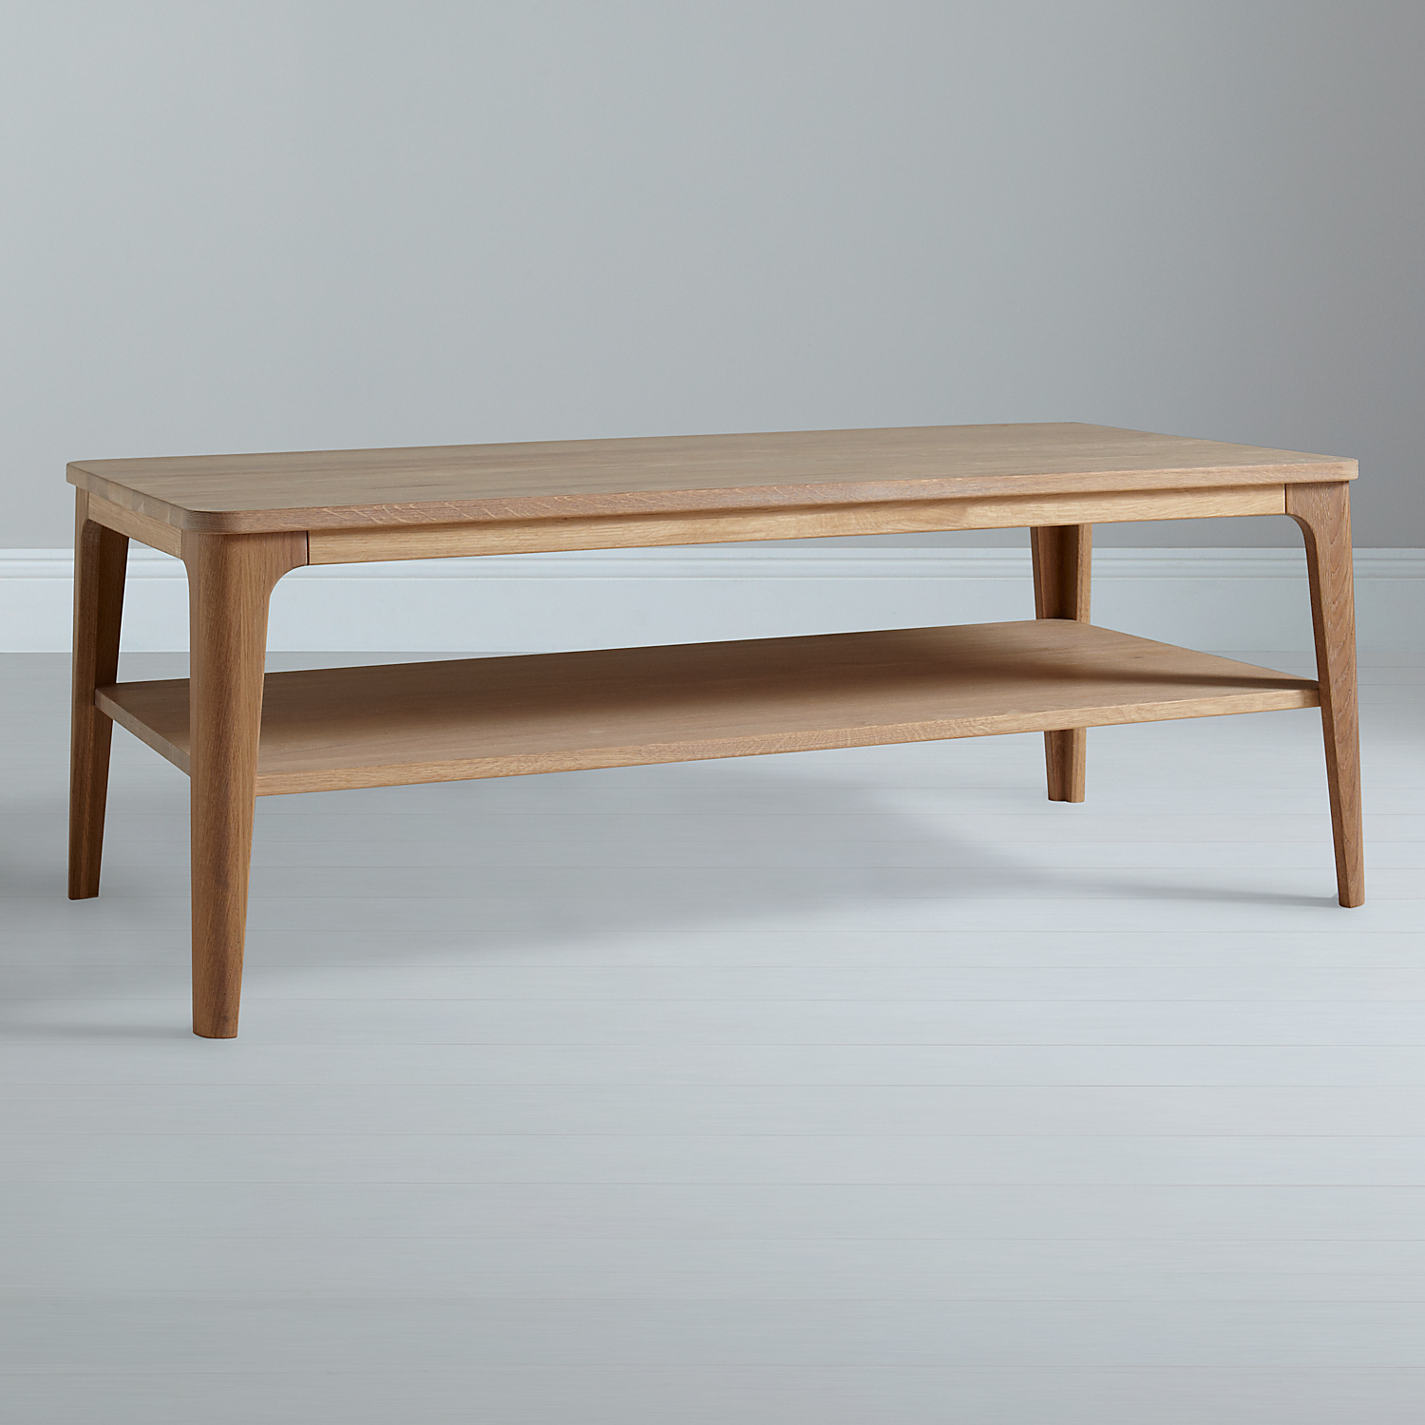 Buy Ebbe Gehl for John Lewis Mira Coffee Table